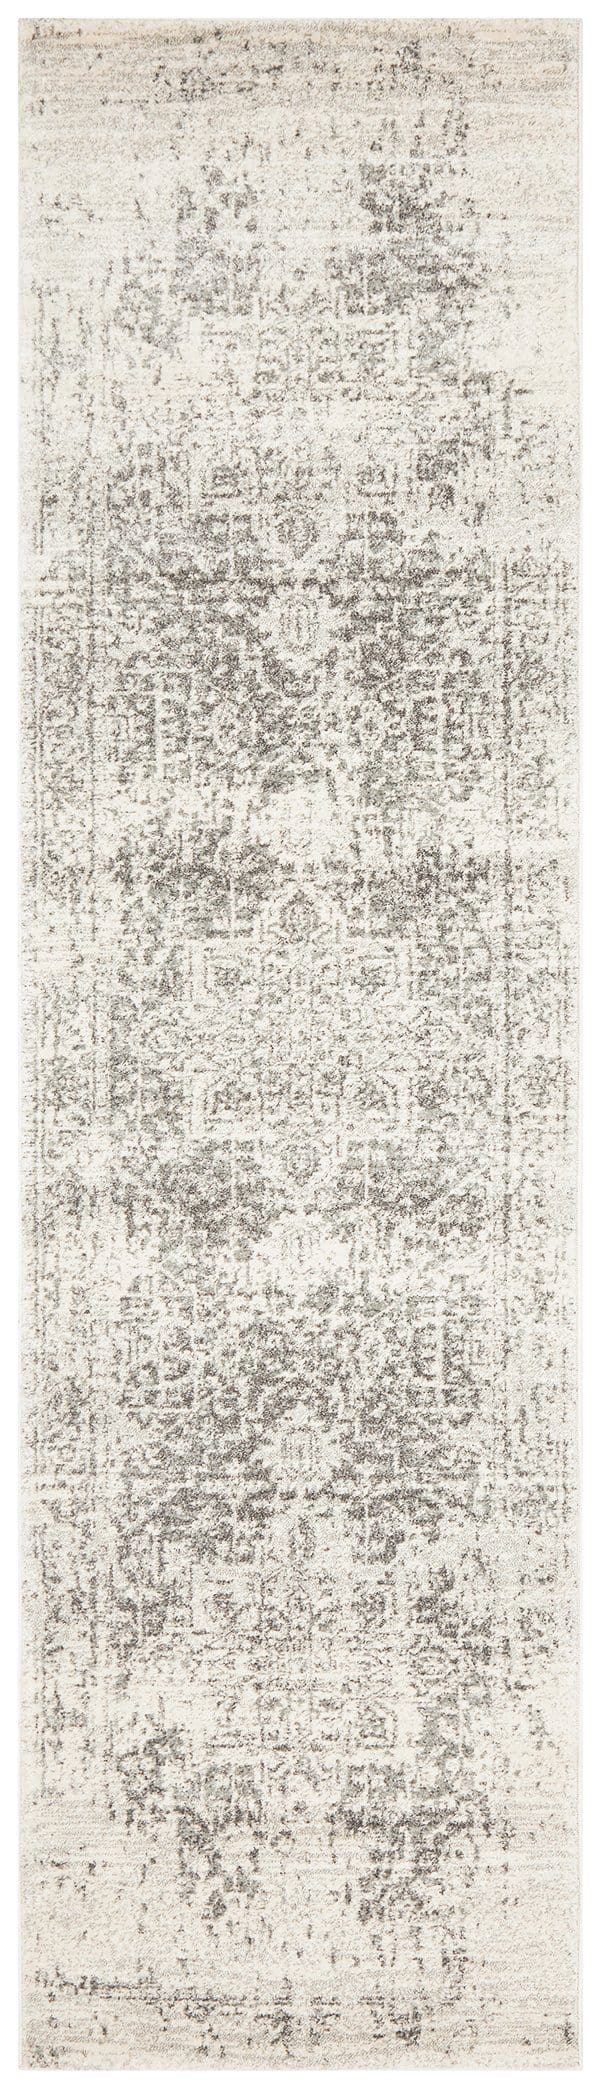 Arsuk Ivory & Grey Distressed Runner Rug